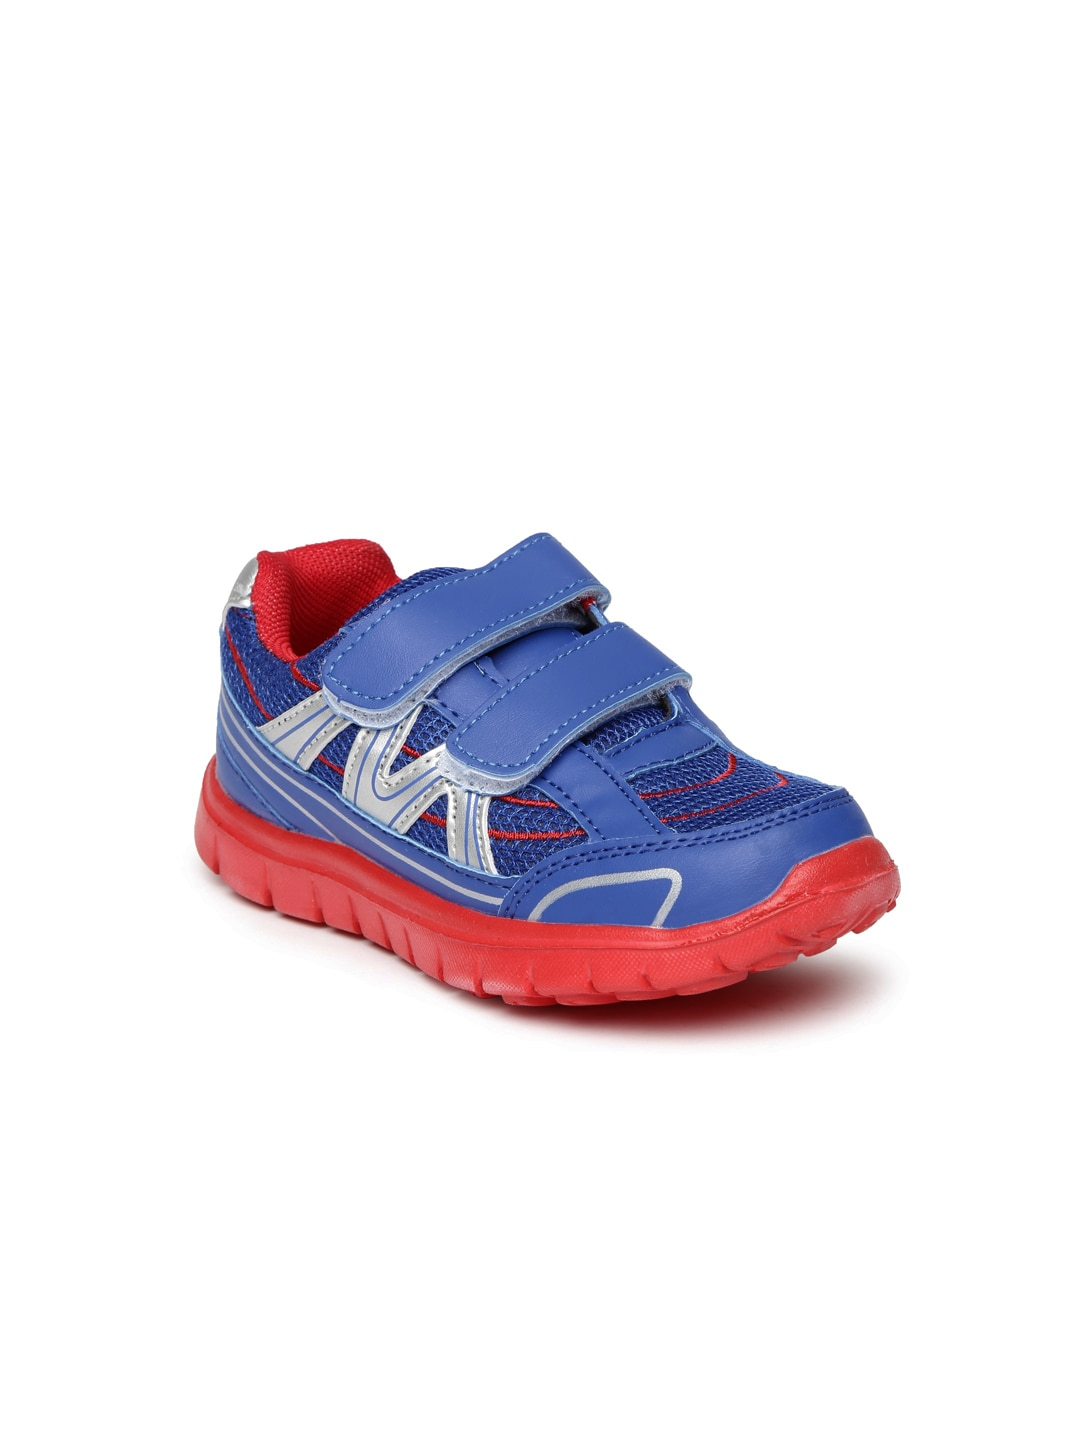 Boys Sports Shoes - Buy Sports Shoes For Kids Online in India 899fc3eeee8